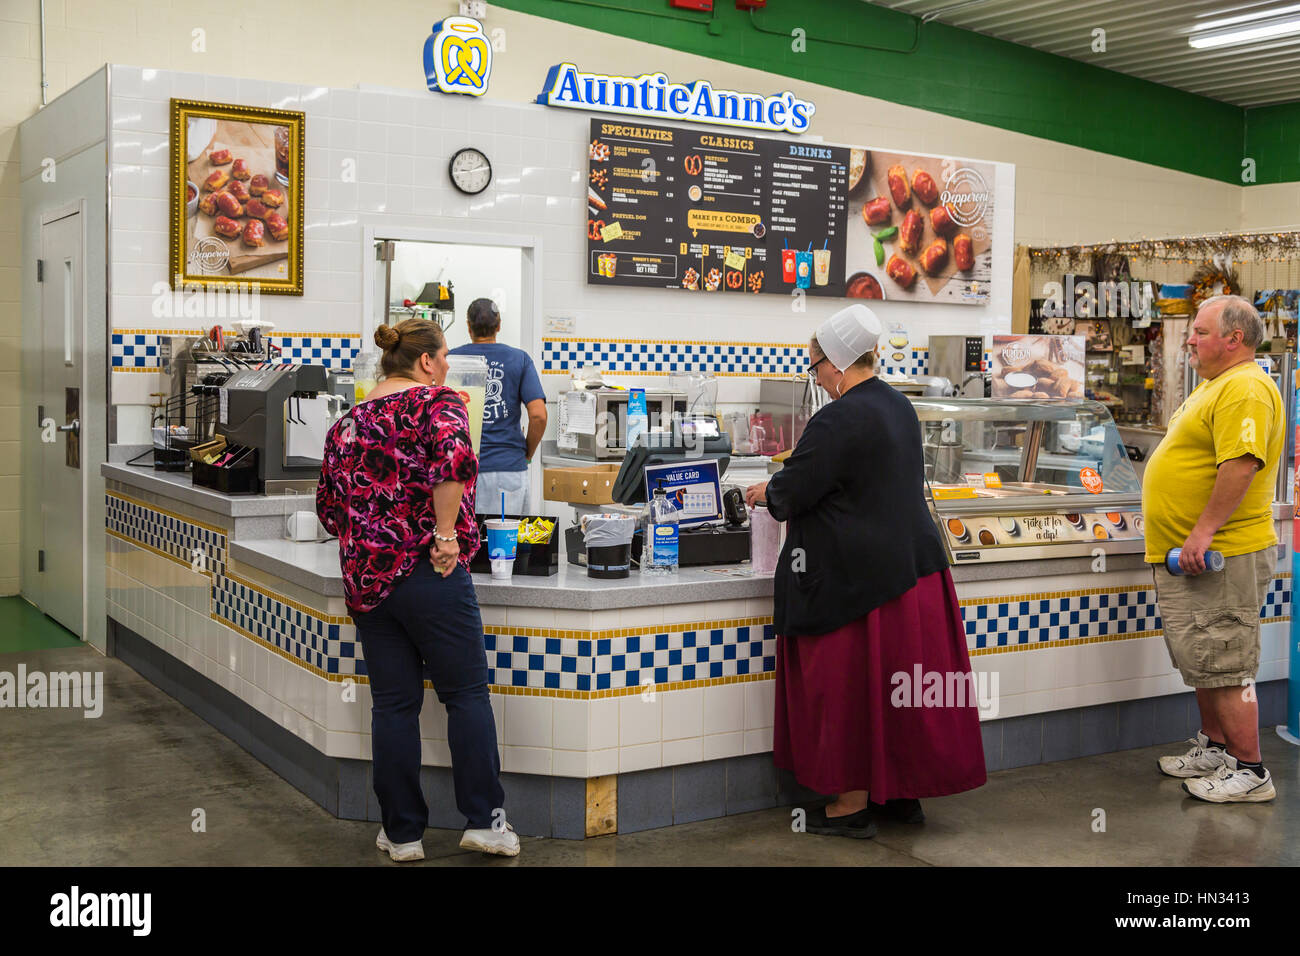 Auntie Anne's fast food counter at a flea market in Berlin, Ohio, USA. - Stock Image